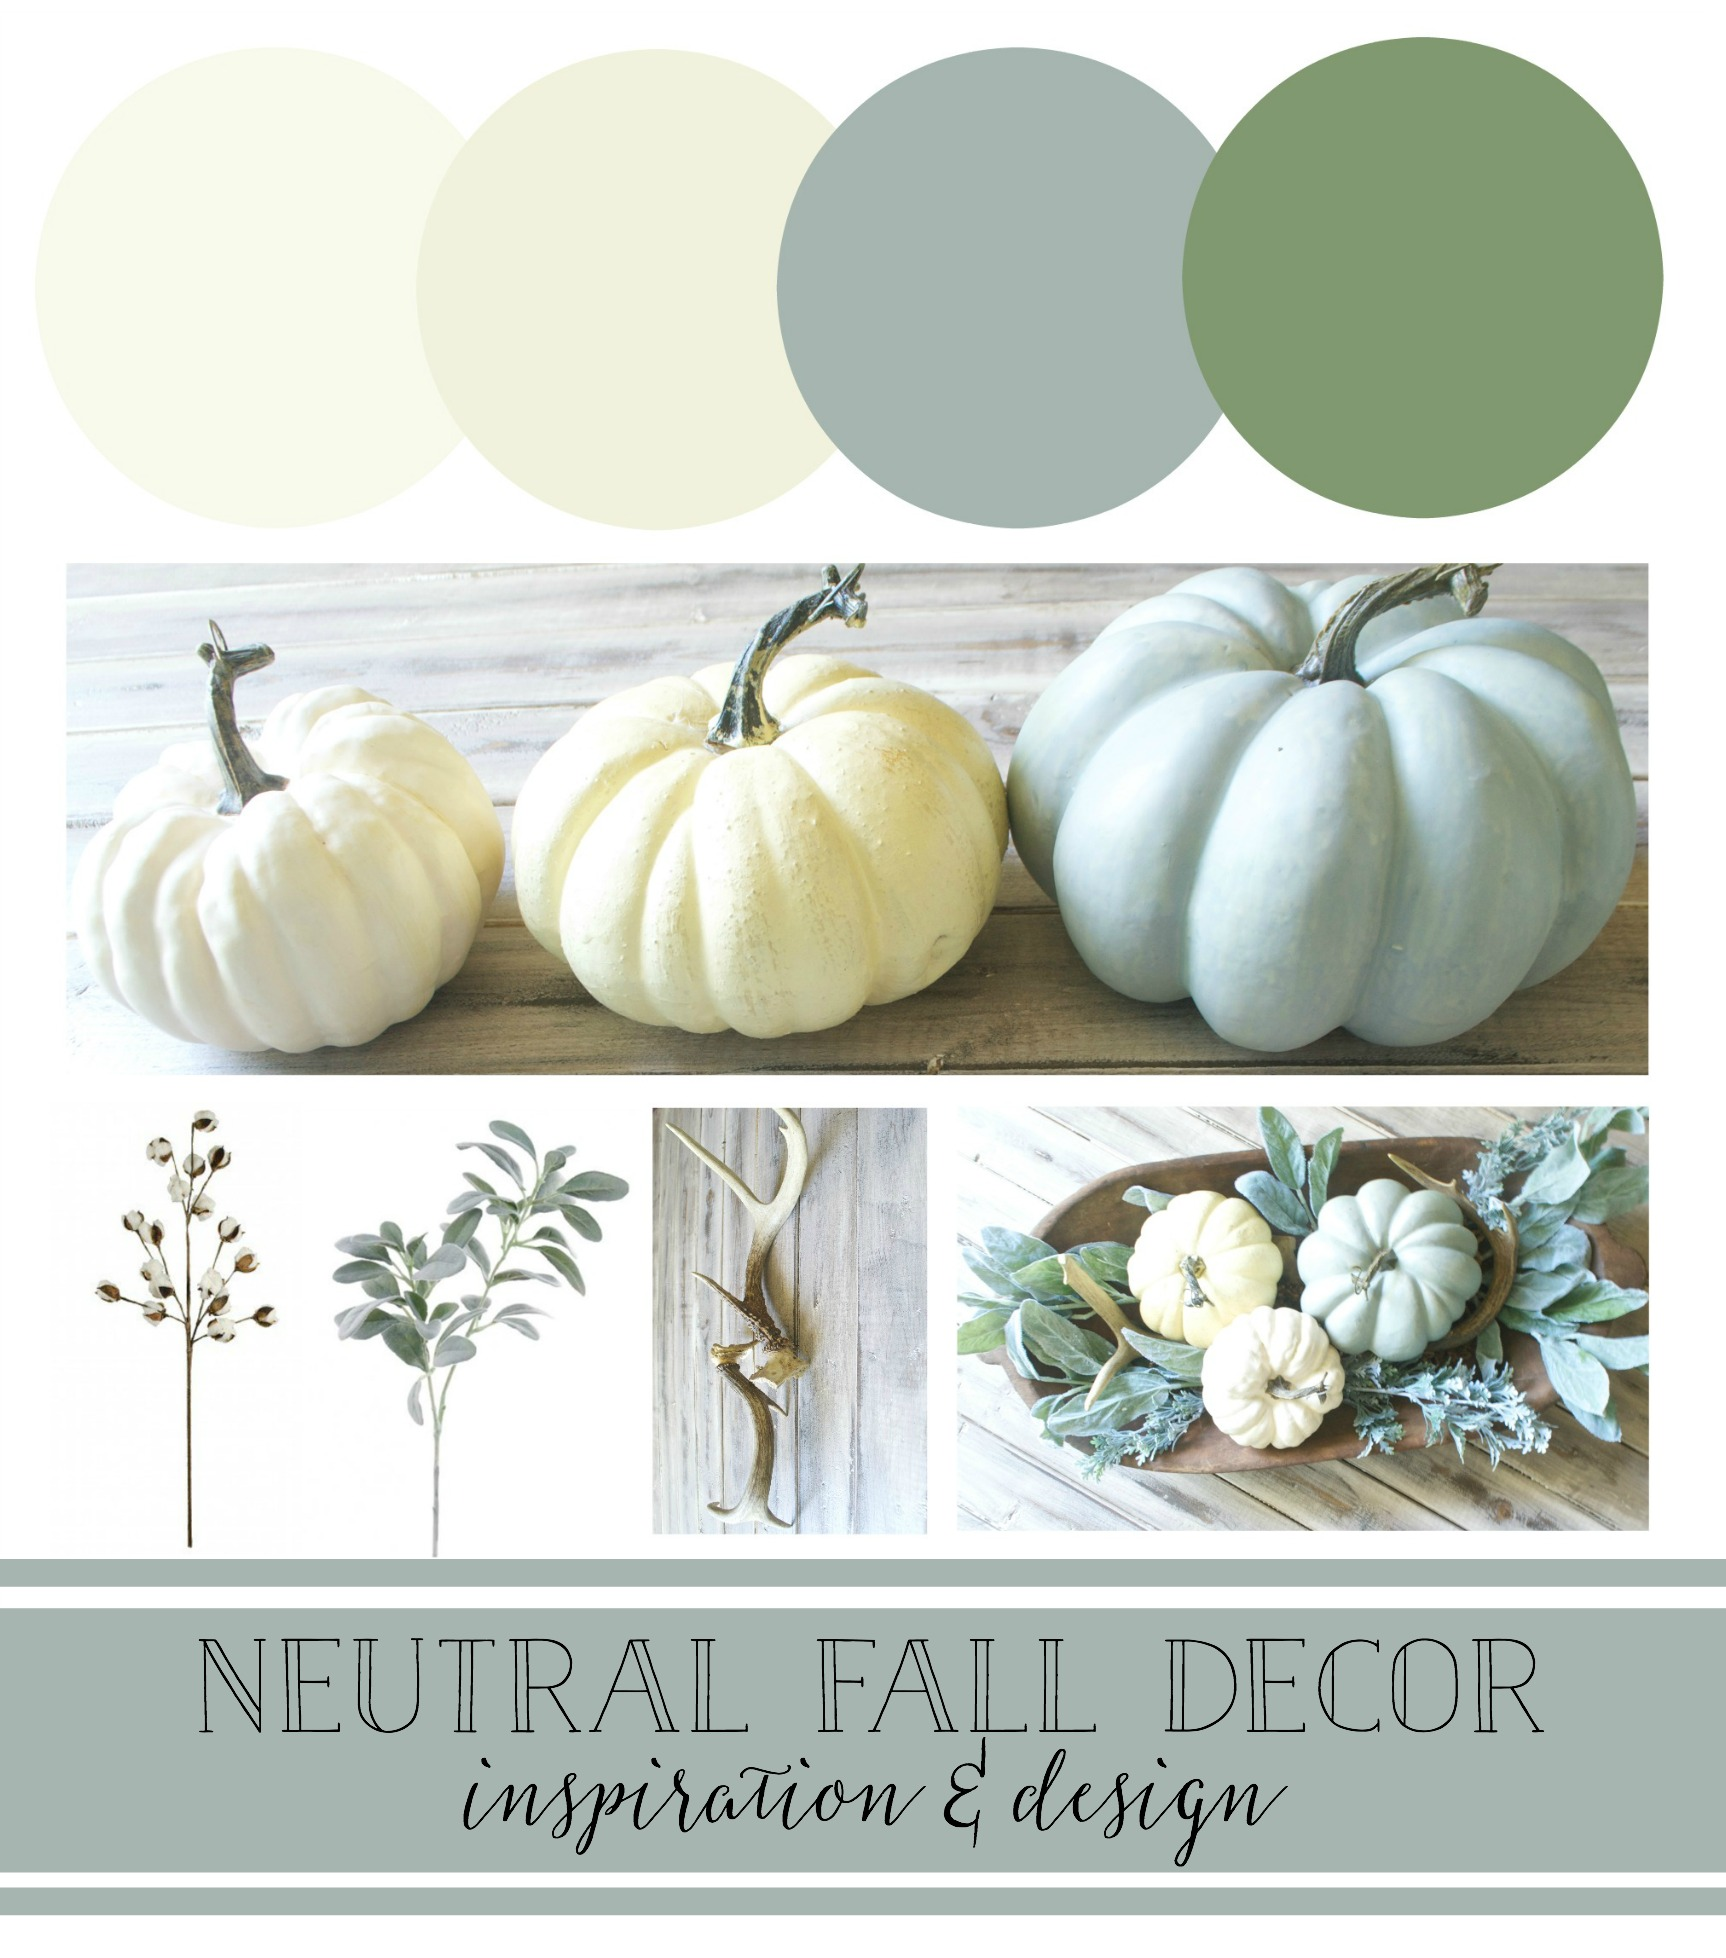 Neutral Fall Decor Inspiration and Design- Kayla Miller of Plum Pretty Decor and Design Shares Her Fall Style Board